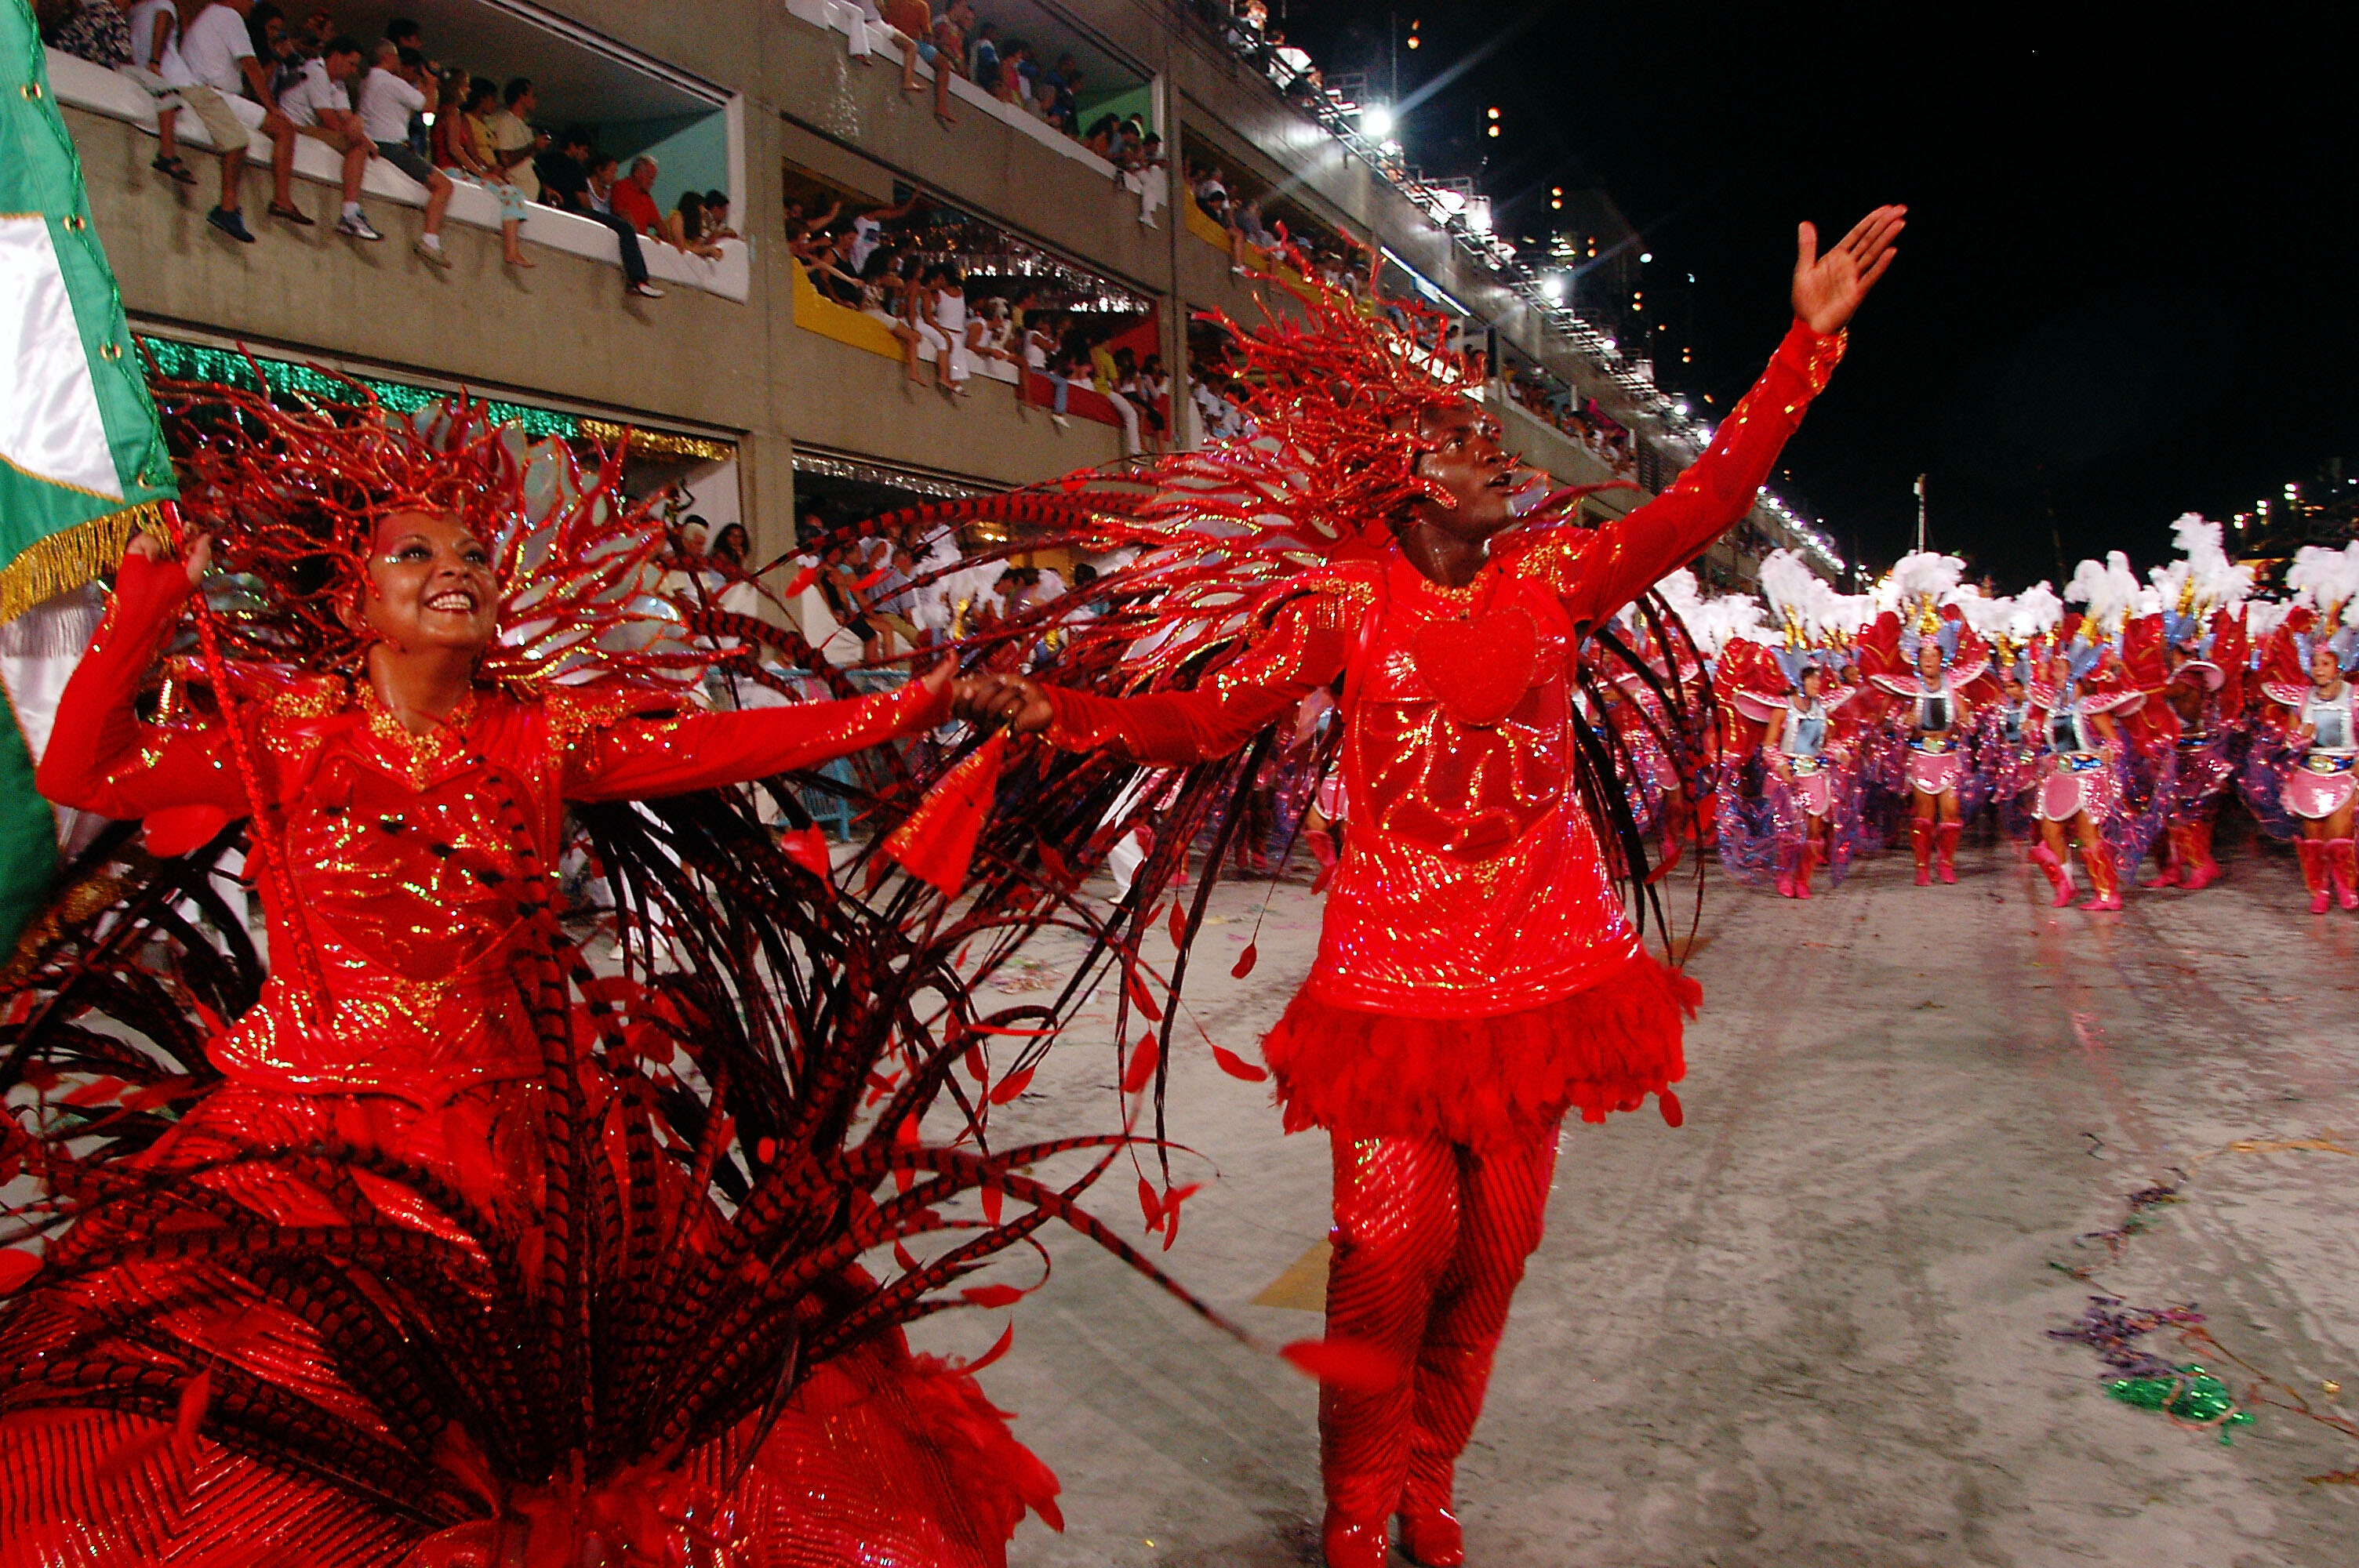 Rituals, Traditions and Celebrations in Haiti